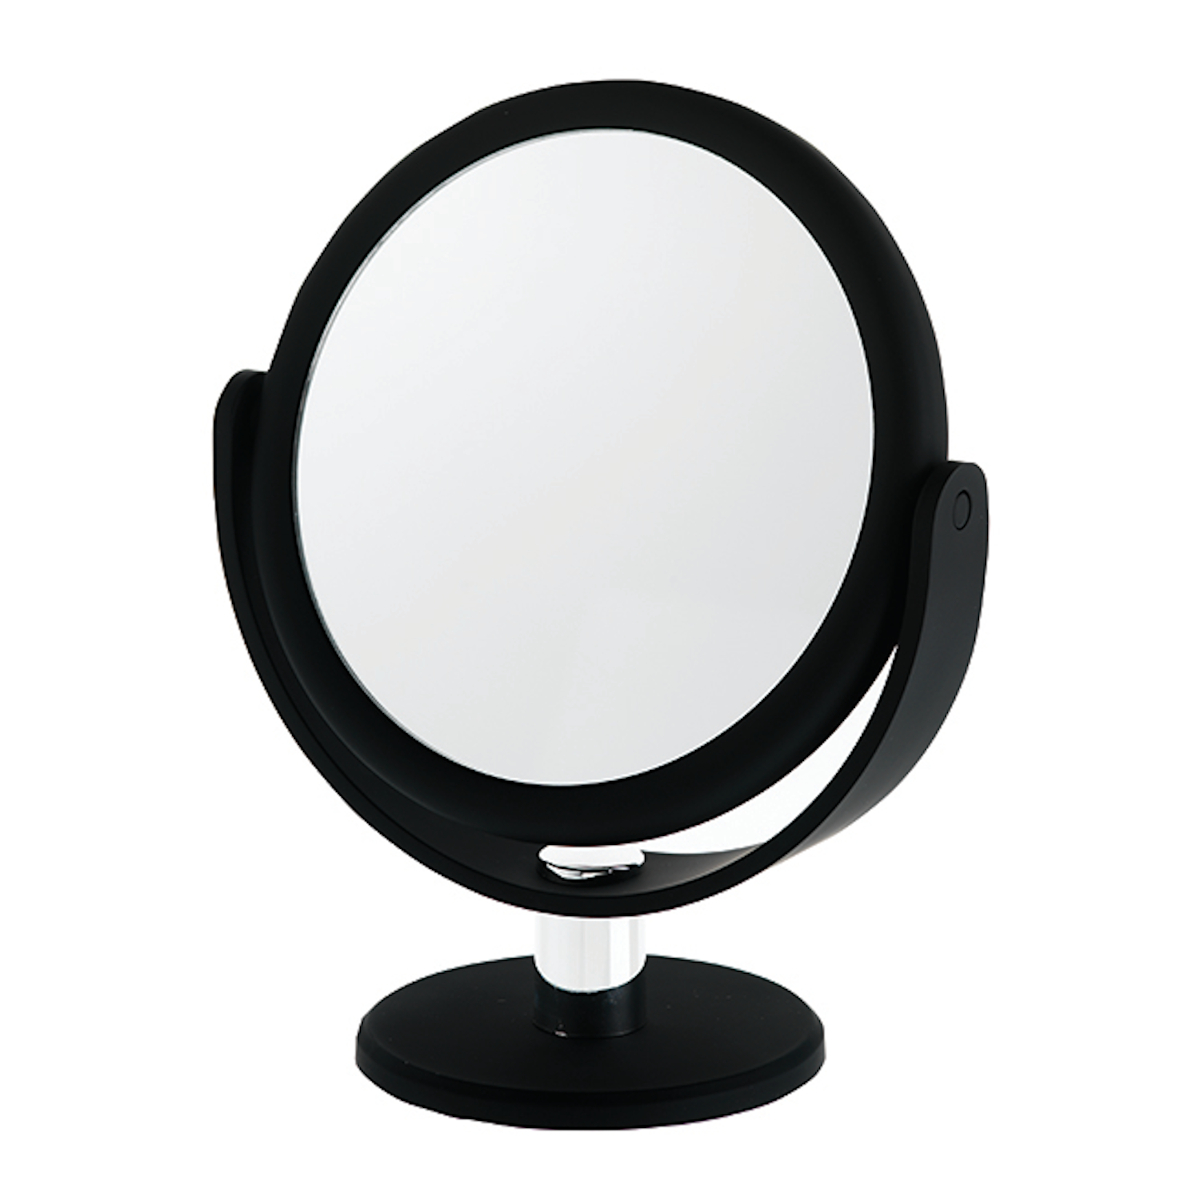 Danielle Creations Round Soft Touch Black Vanity Mirror X1 X12 Mag